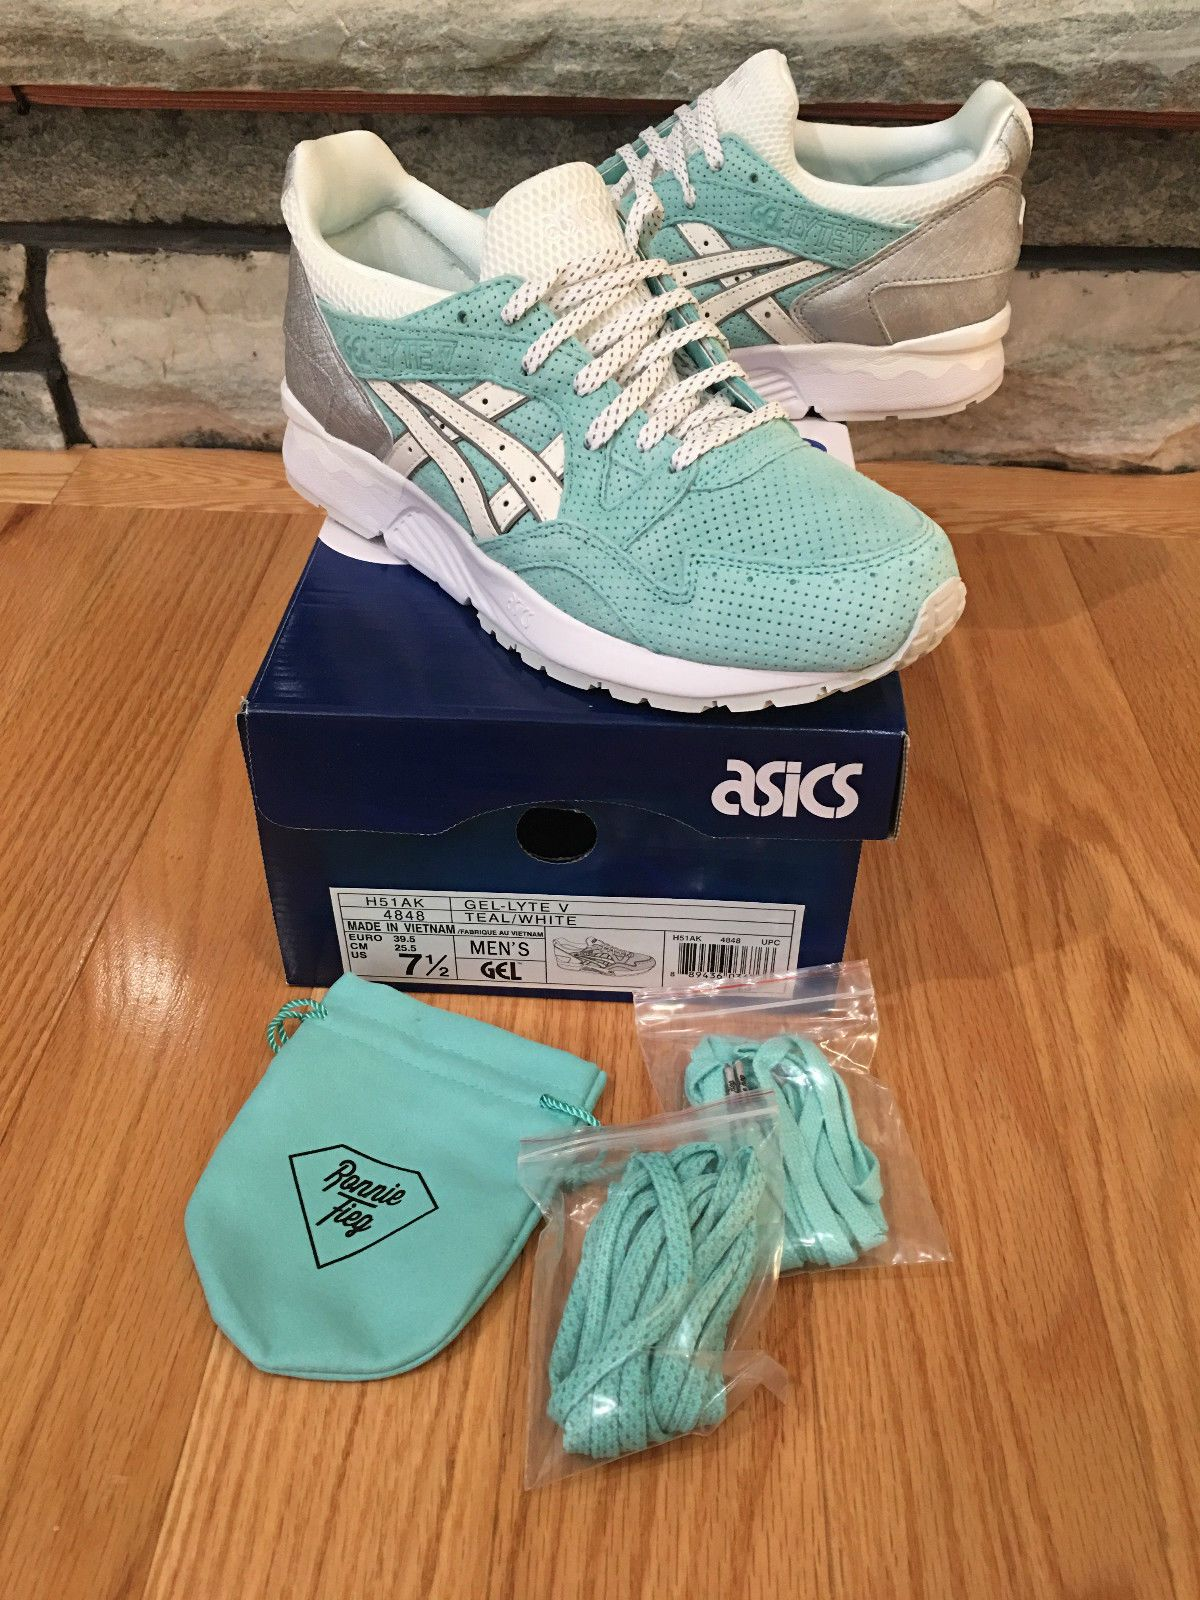 b0b84eaca050 ASICS x KITH Ronnie Fieg x TIFFANY Diamond Supply Gel Lyte V Size 7.5 DS New